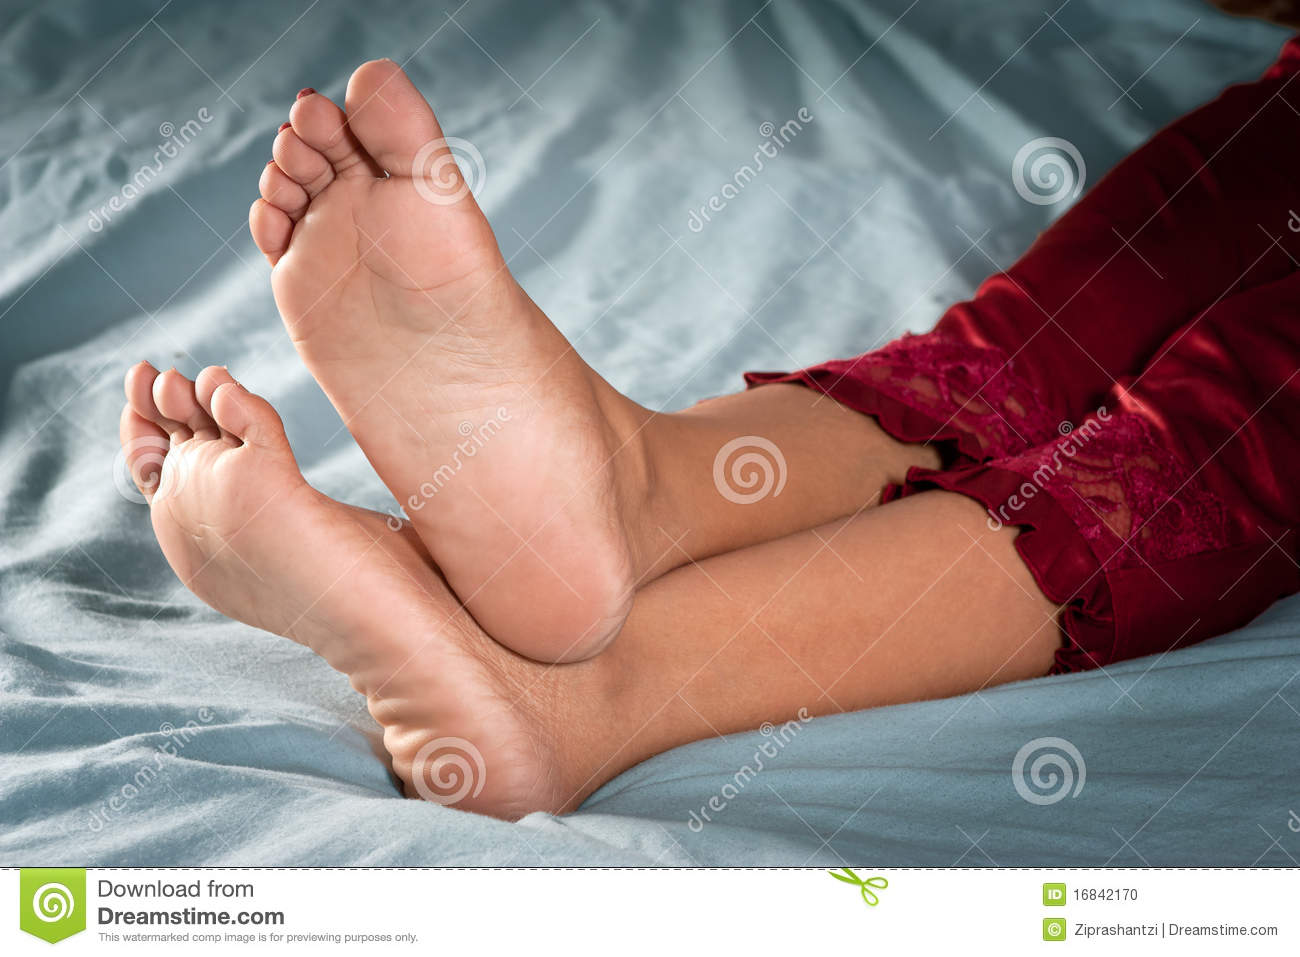 Women feet soles girl